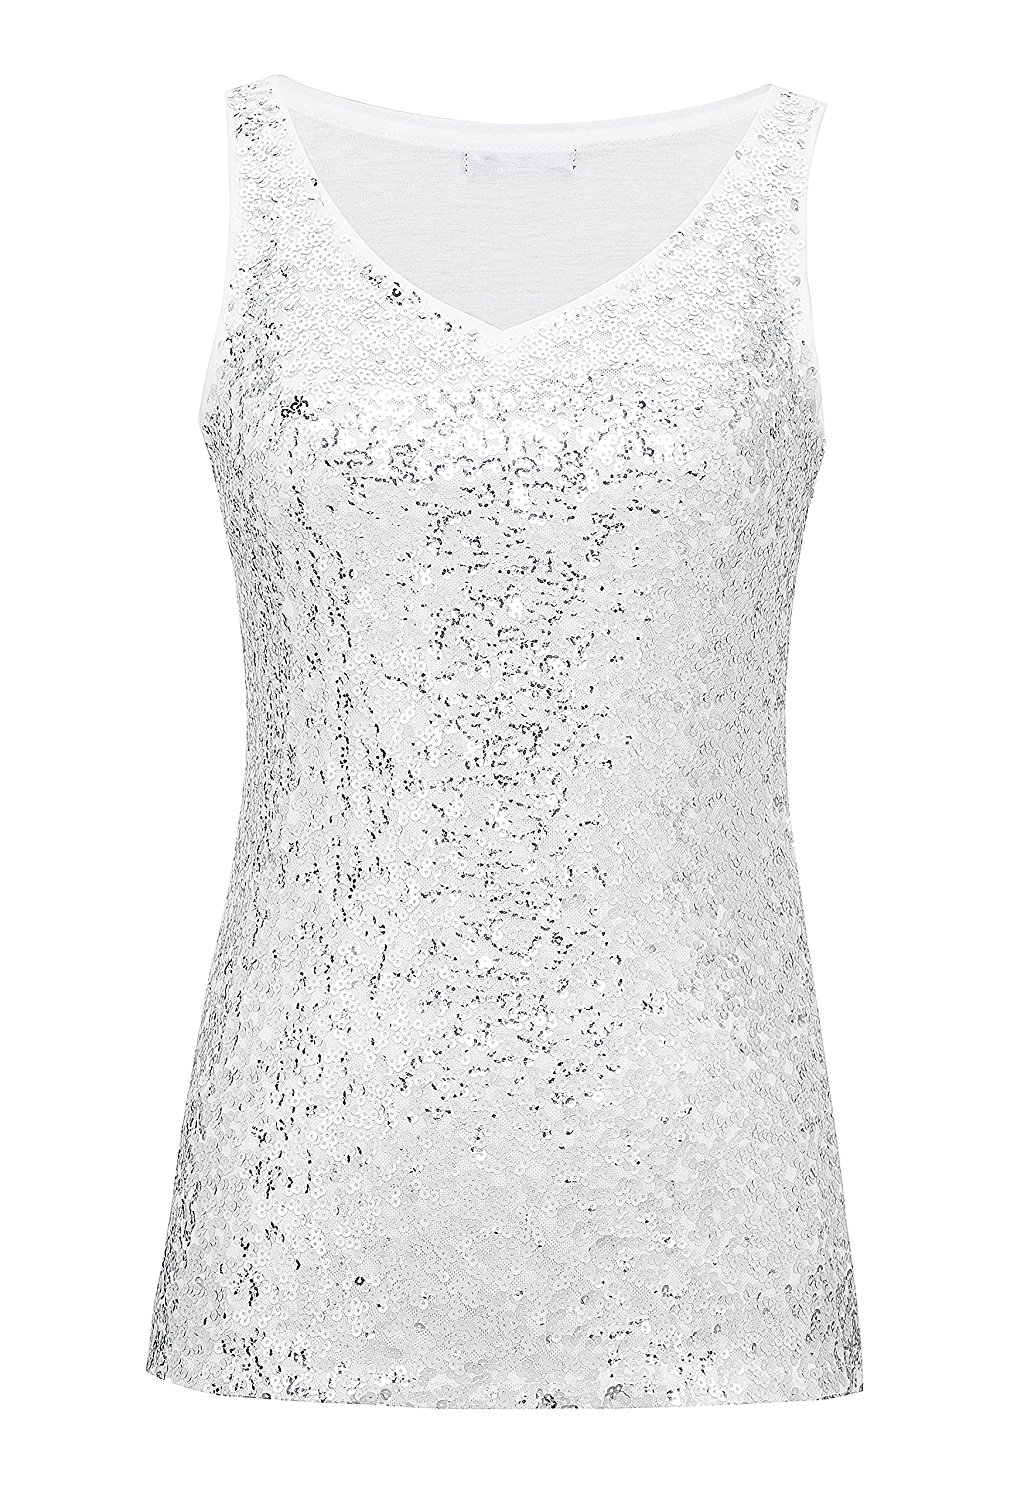 8e0d558a Get Quotations · Metme Sleeveless Shirt V Neck Sequin Embellished  Close-Fitting Tank Tops Vest Tops For Women